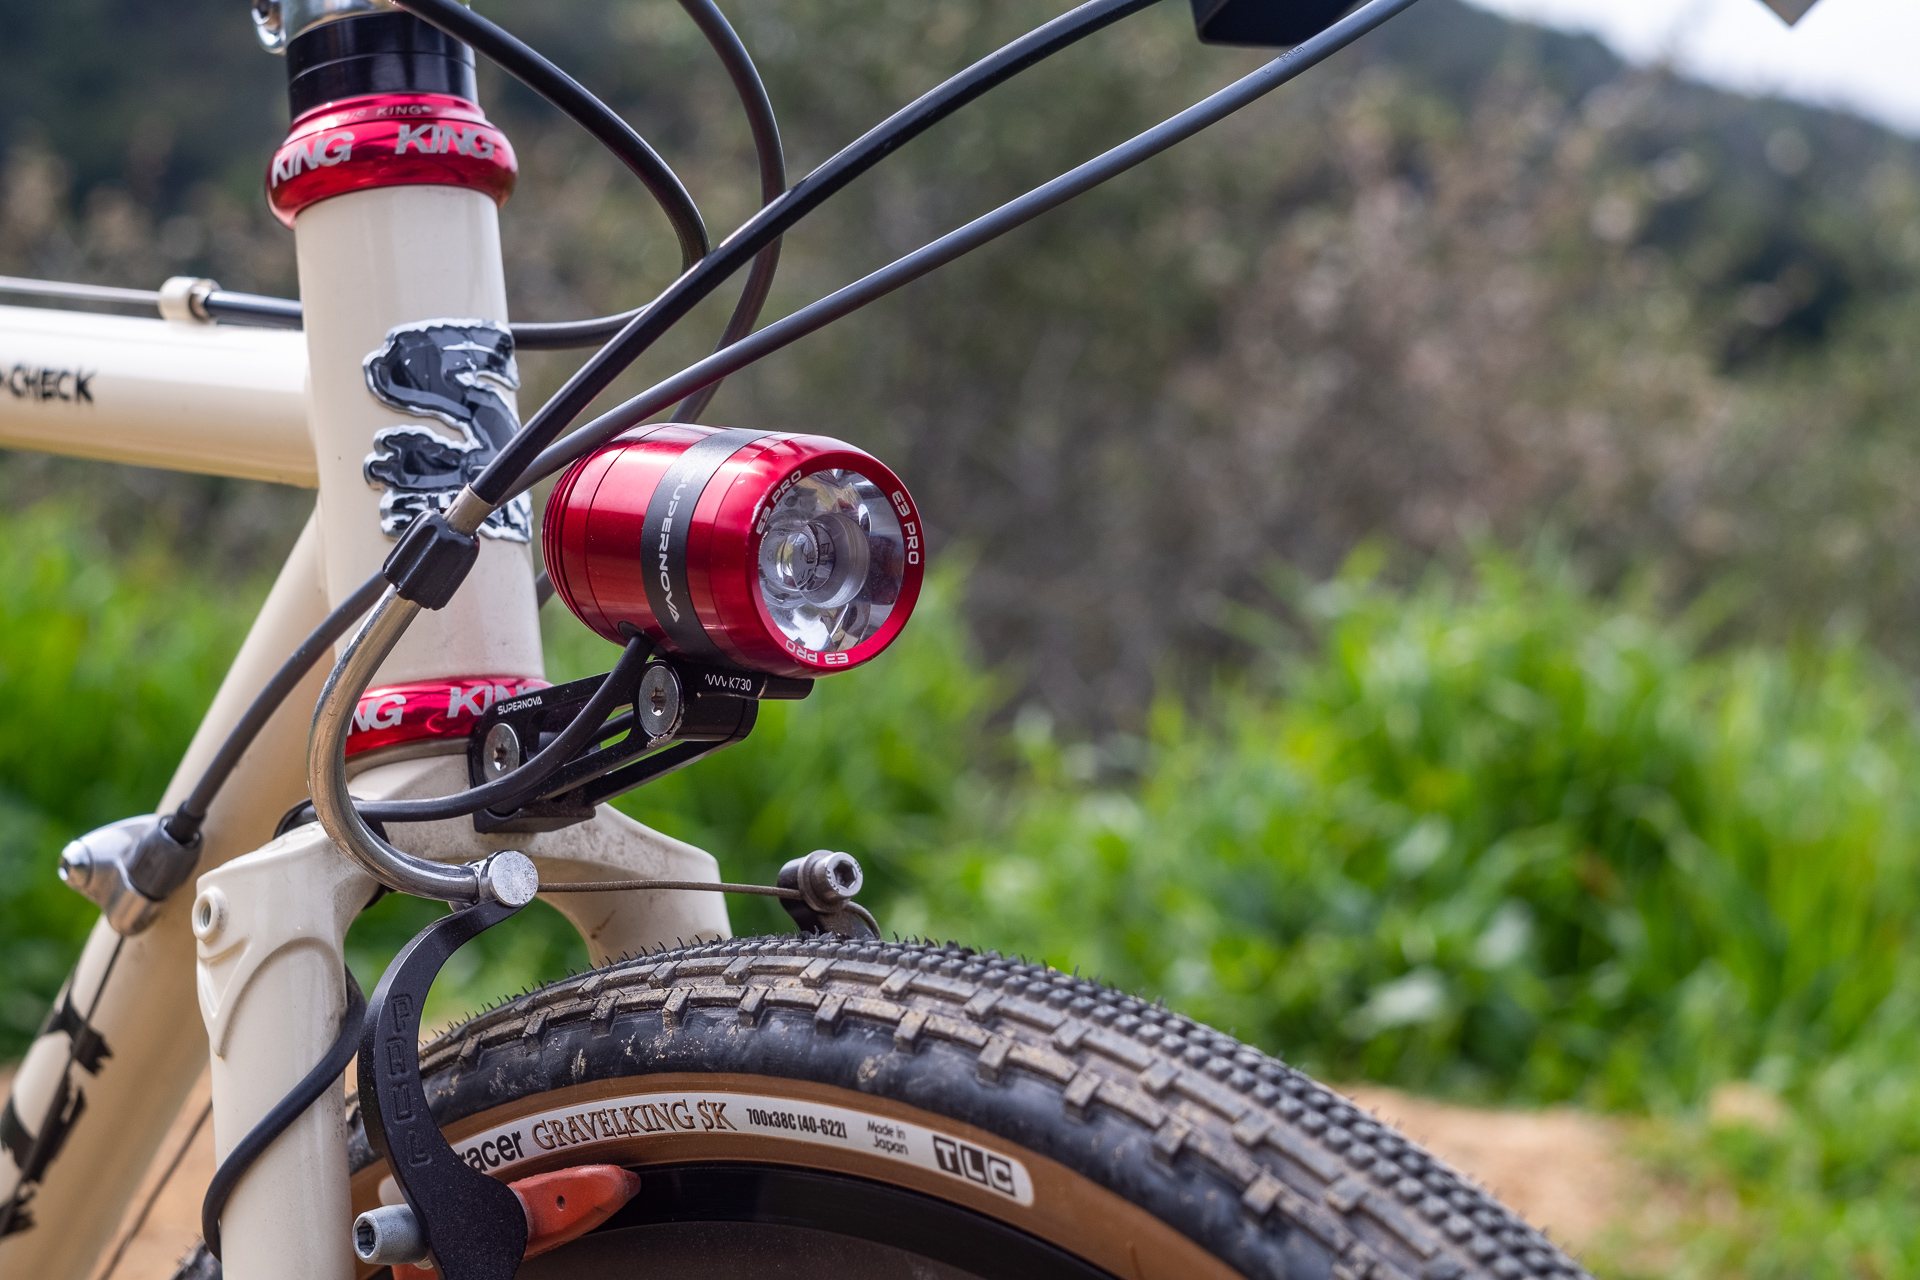 Surly Travelers Gravelers Check Supernova dynamo light detail.